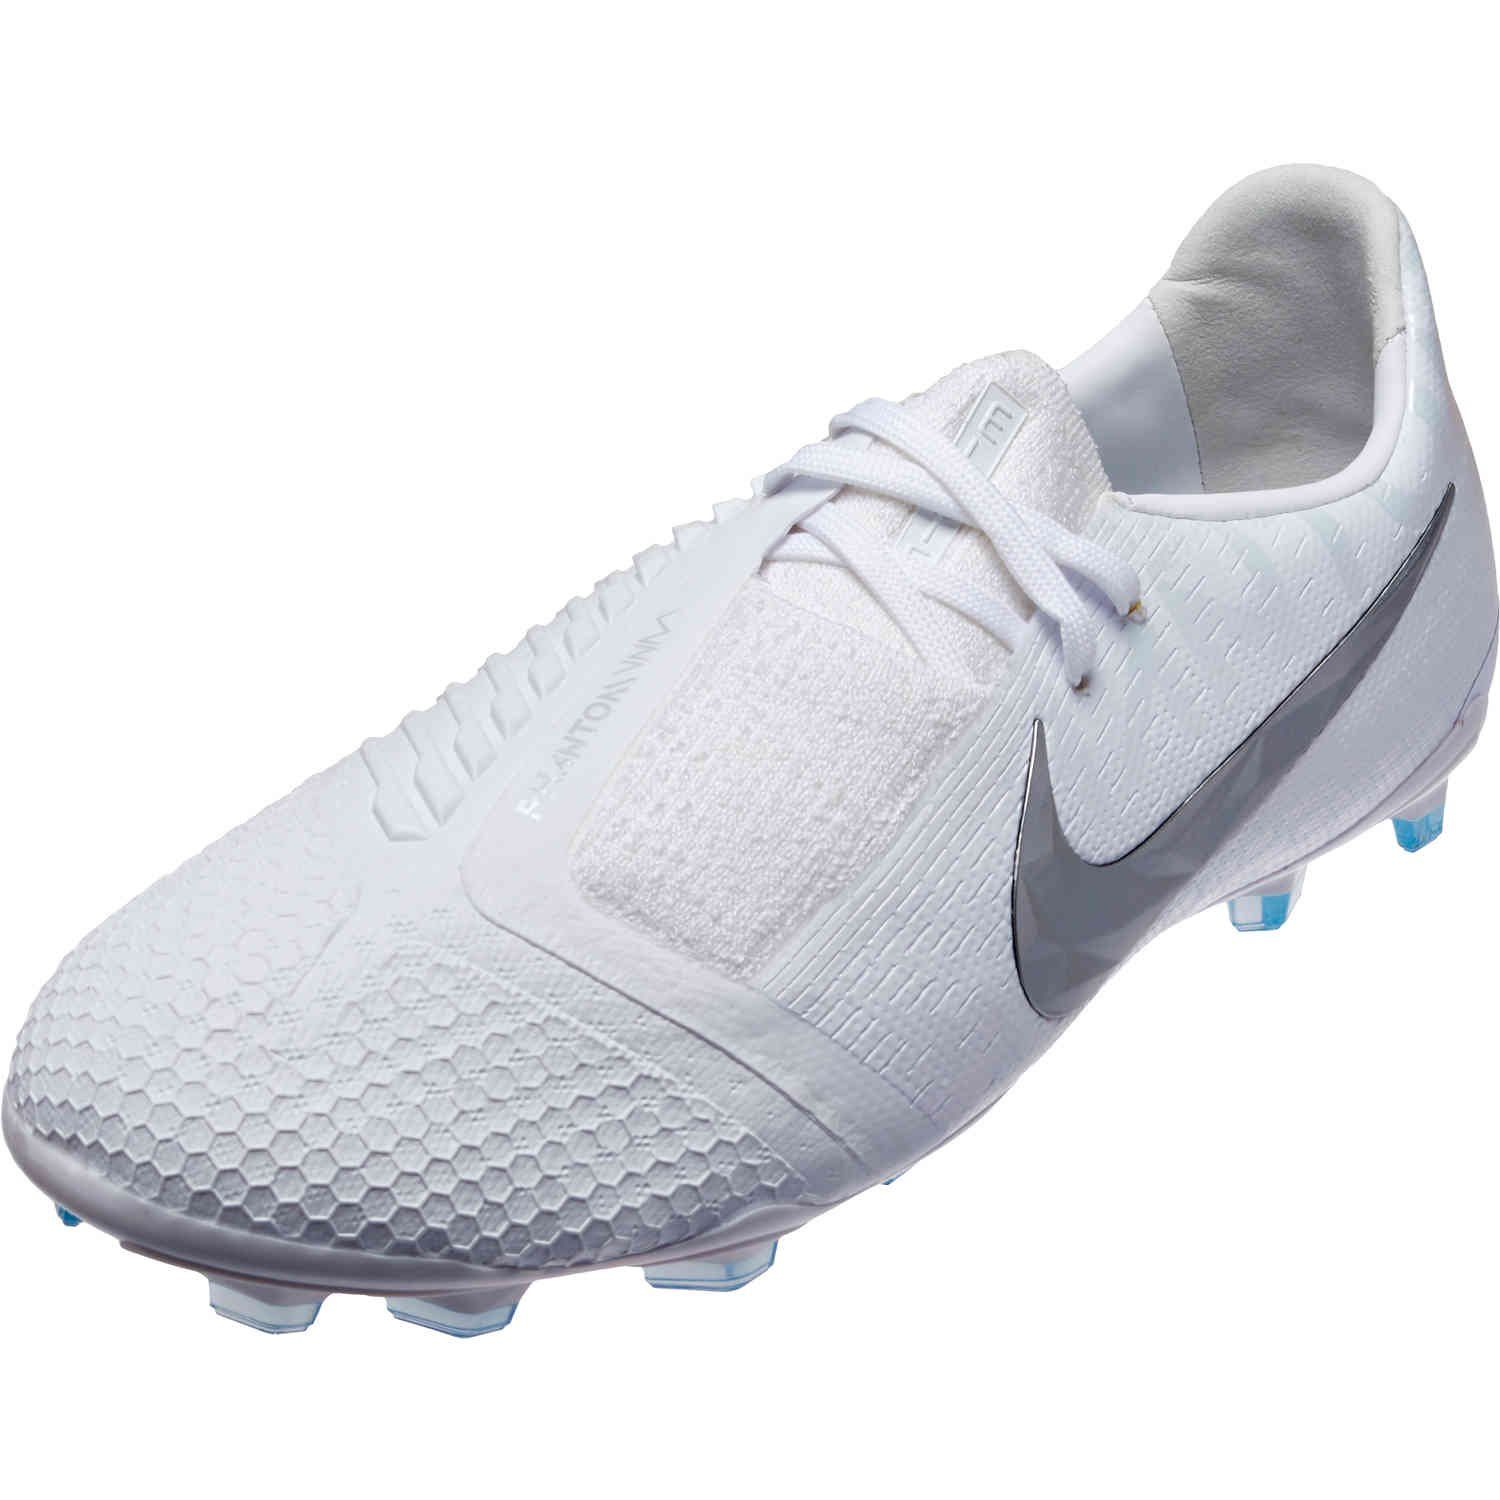 Kids Nike Phantom Venom Elite Fg Nuovo White Soccerpro Soccer Shoes Soccer Cleats Nike Soccer Girl Problems